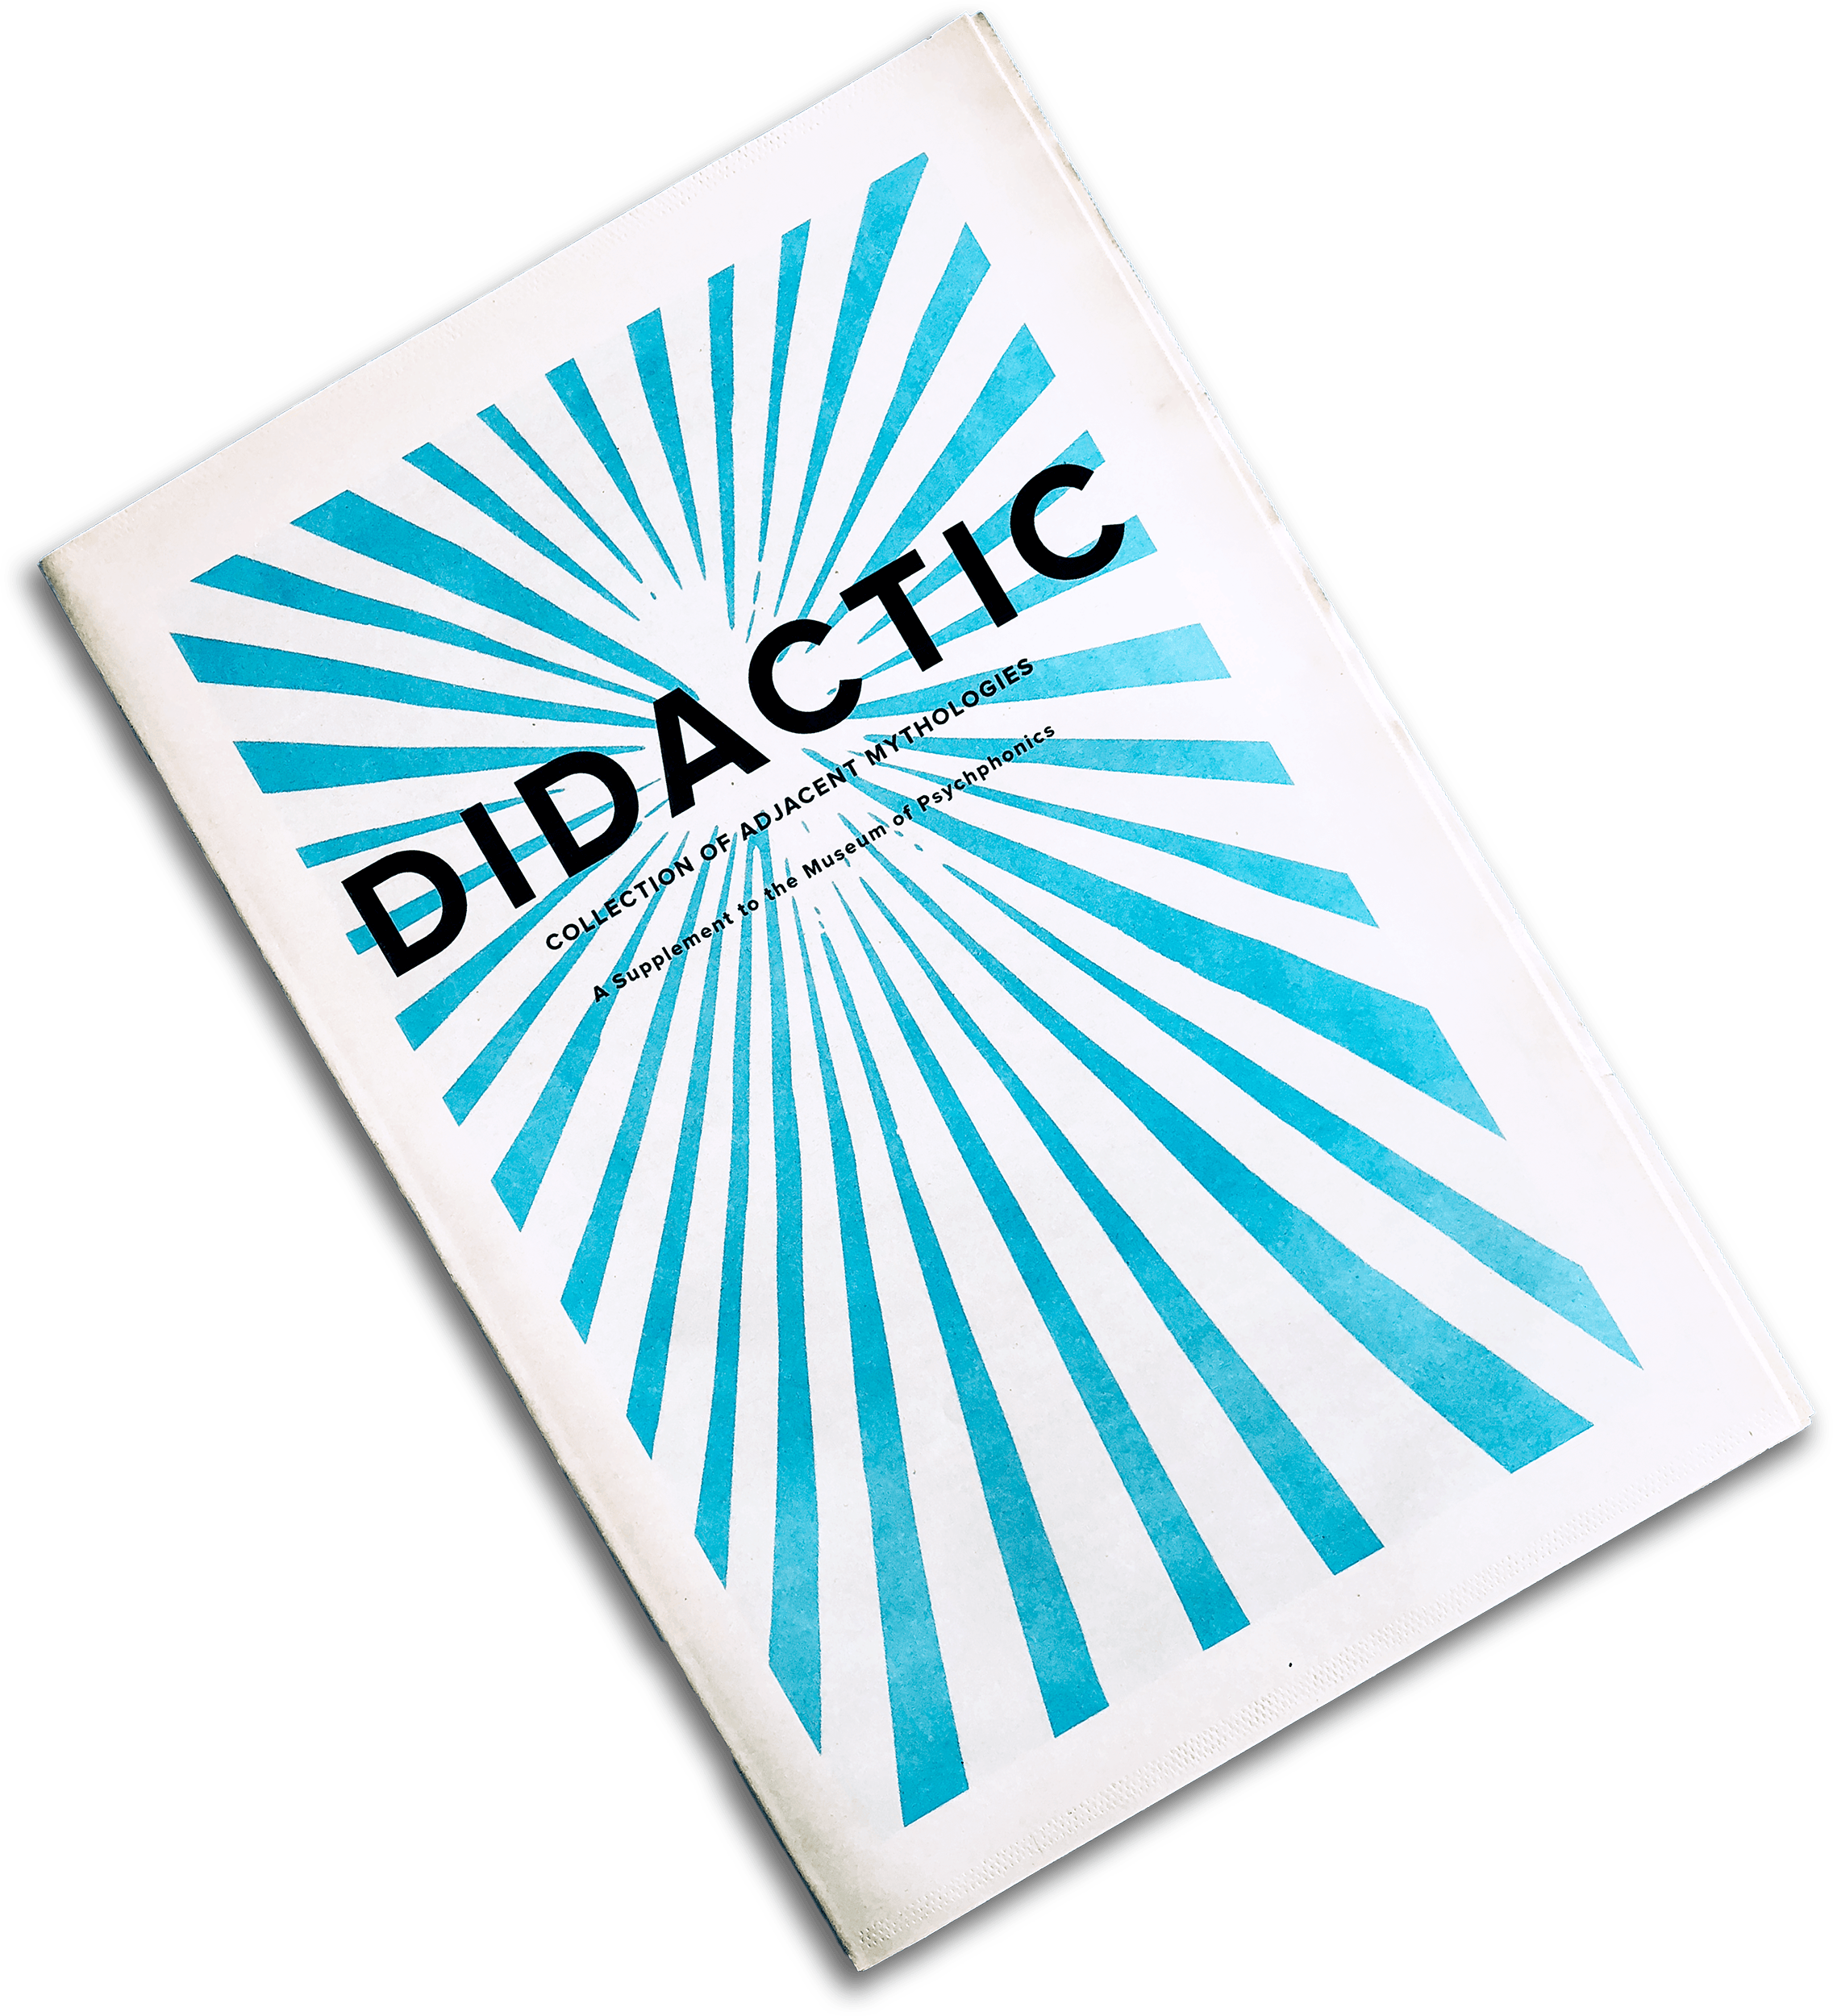 Didactic I: Museum of Psychphonics - View more here ➝